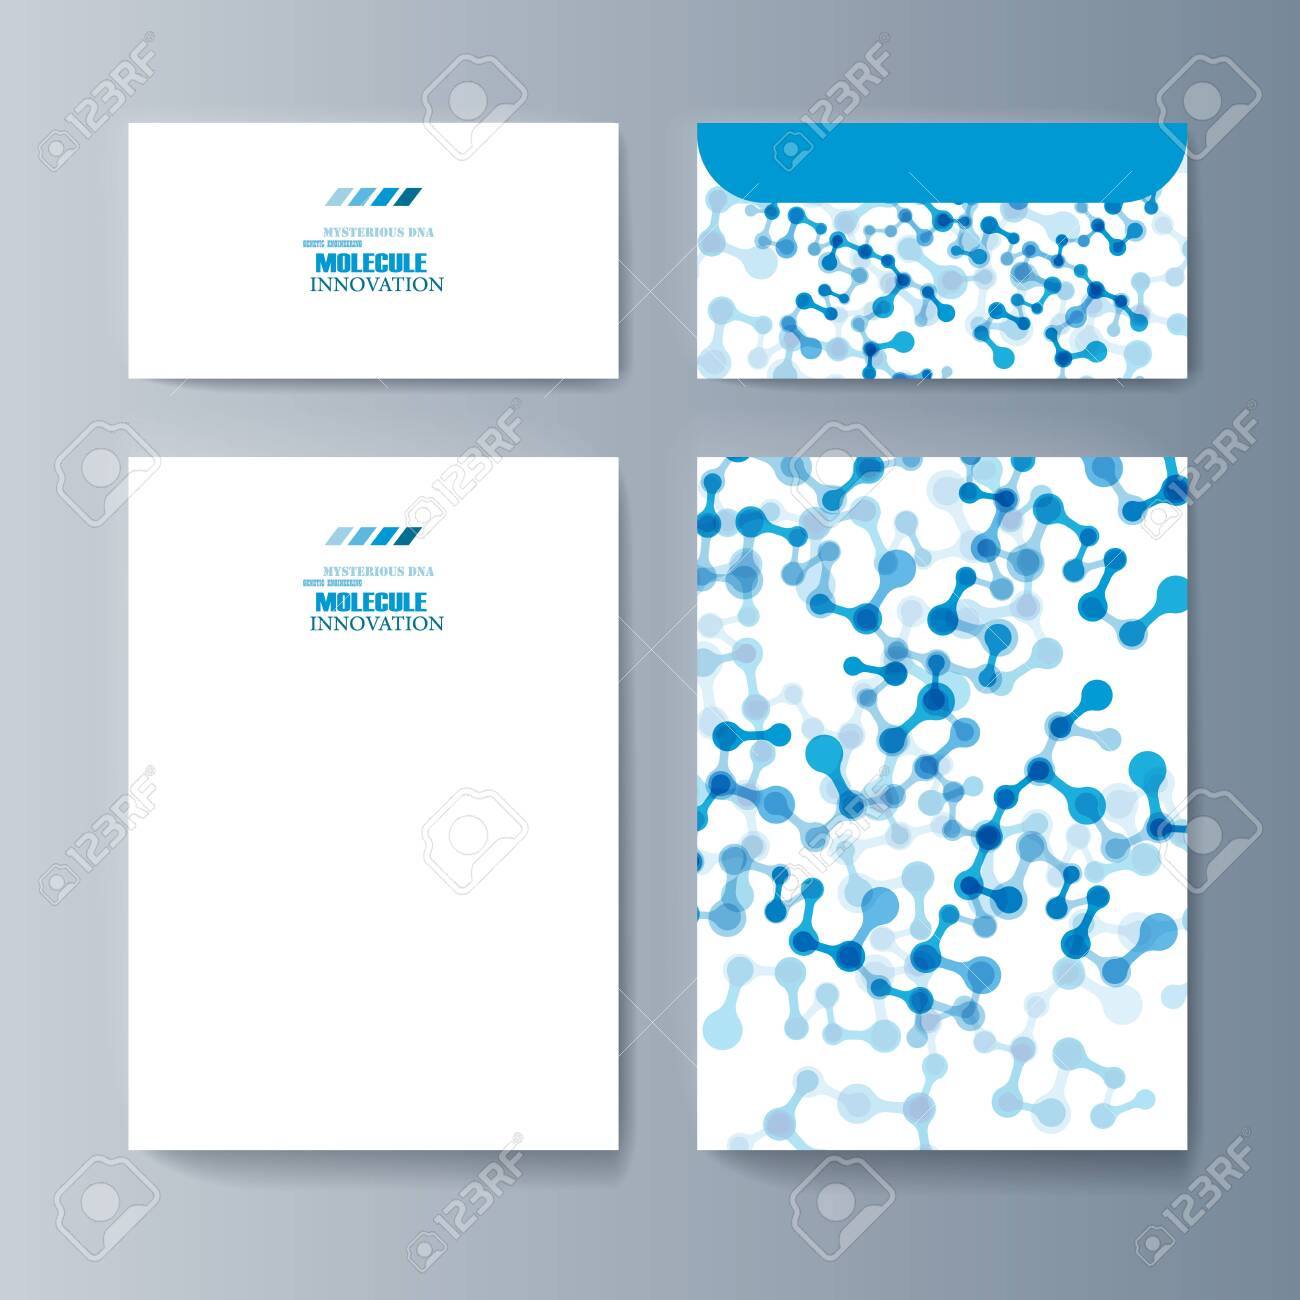 Set of brochures for marketing the promotion goods and services